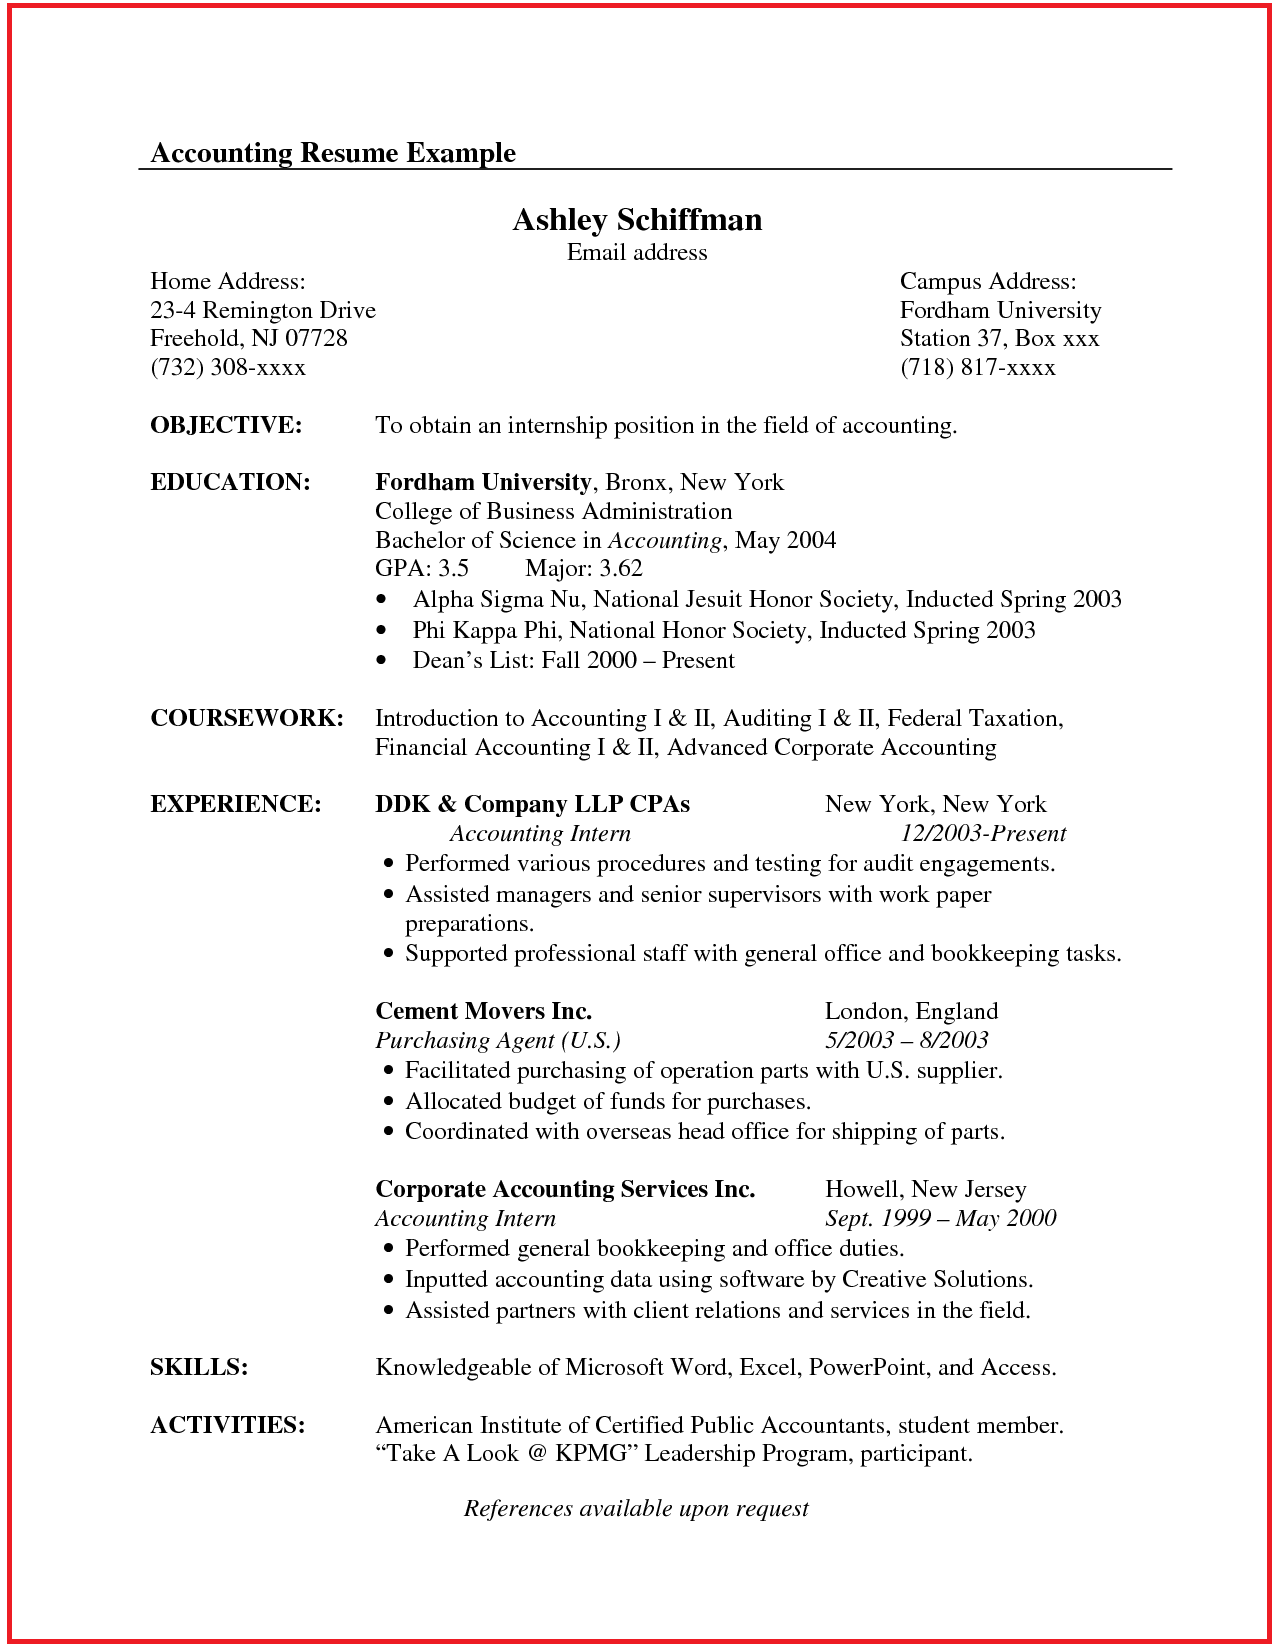 accountant resume sample canada  httpwwwjobresumewebsite  also accountant resume sample canada  httpwwwjobresumewebsiteaccountant